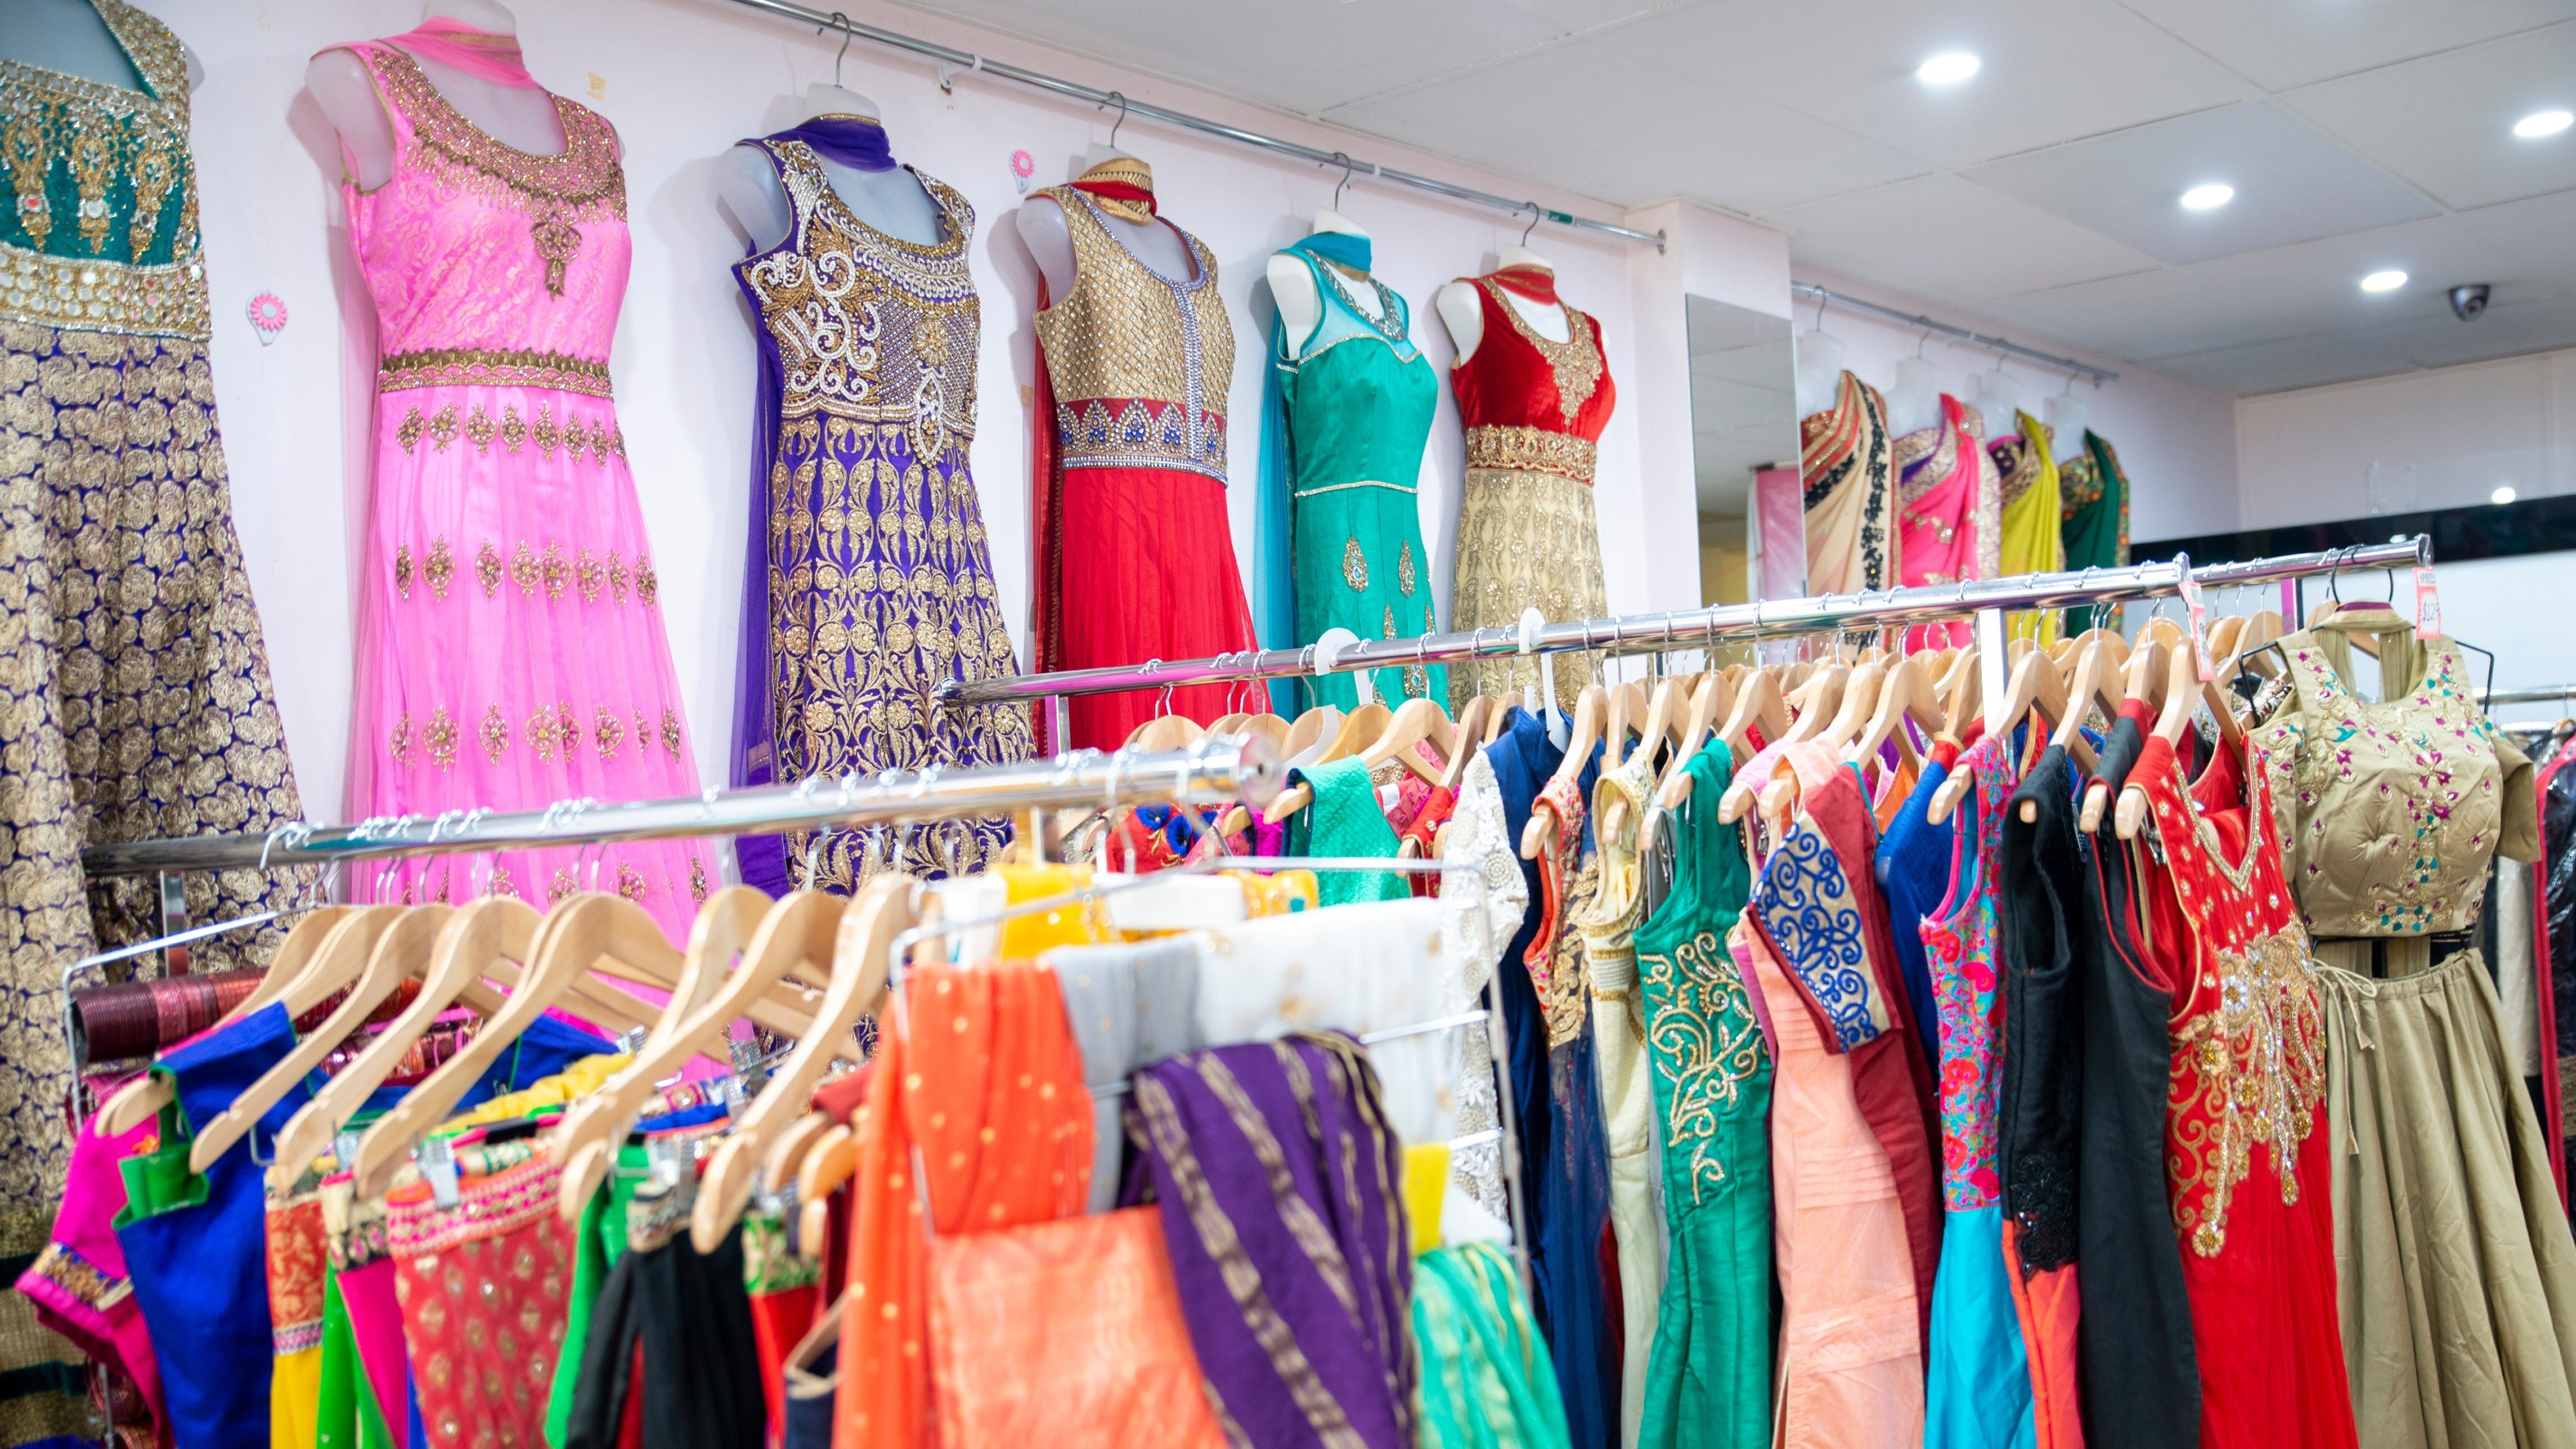 COLourful Indian clothes on racks